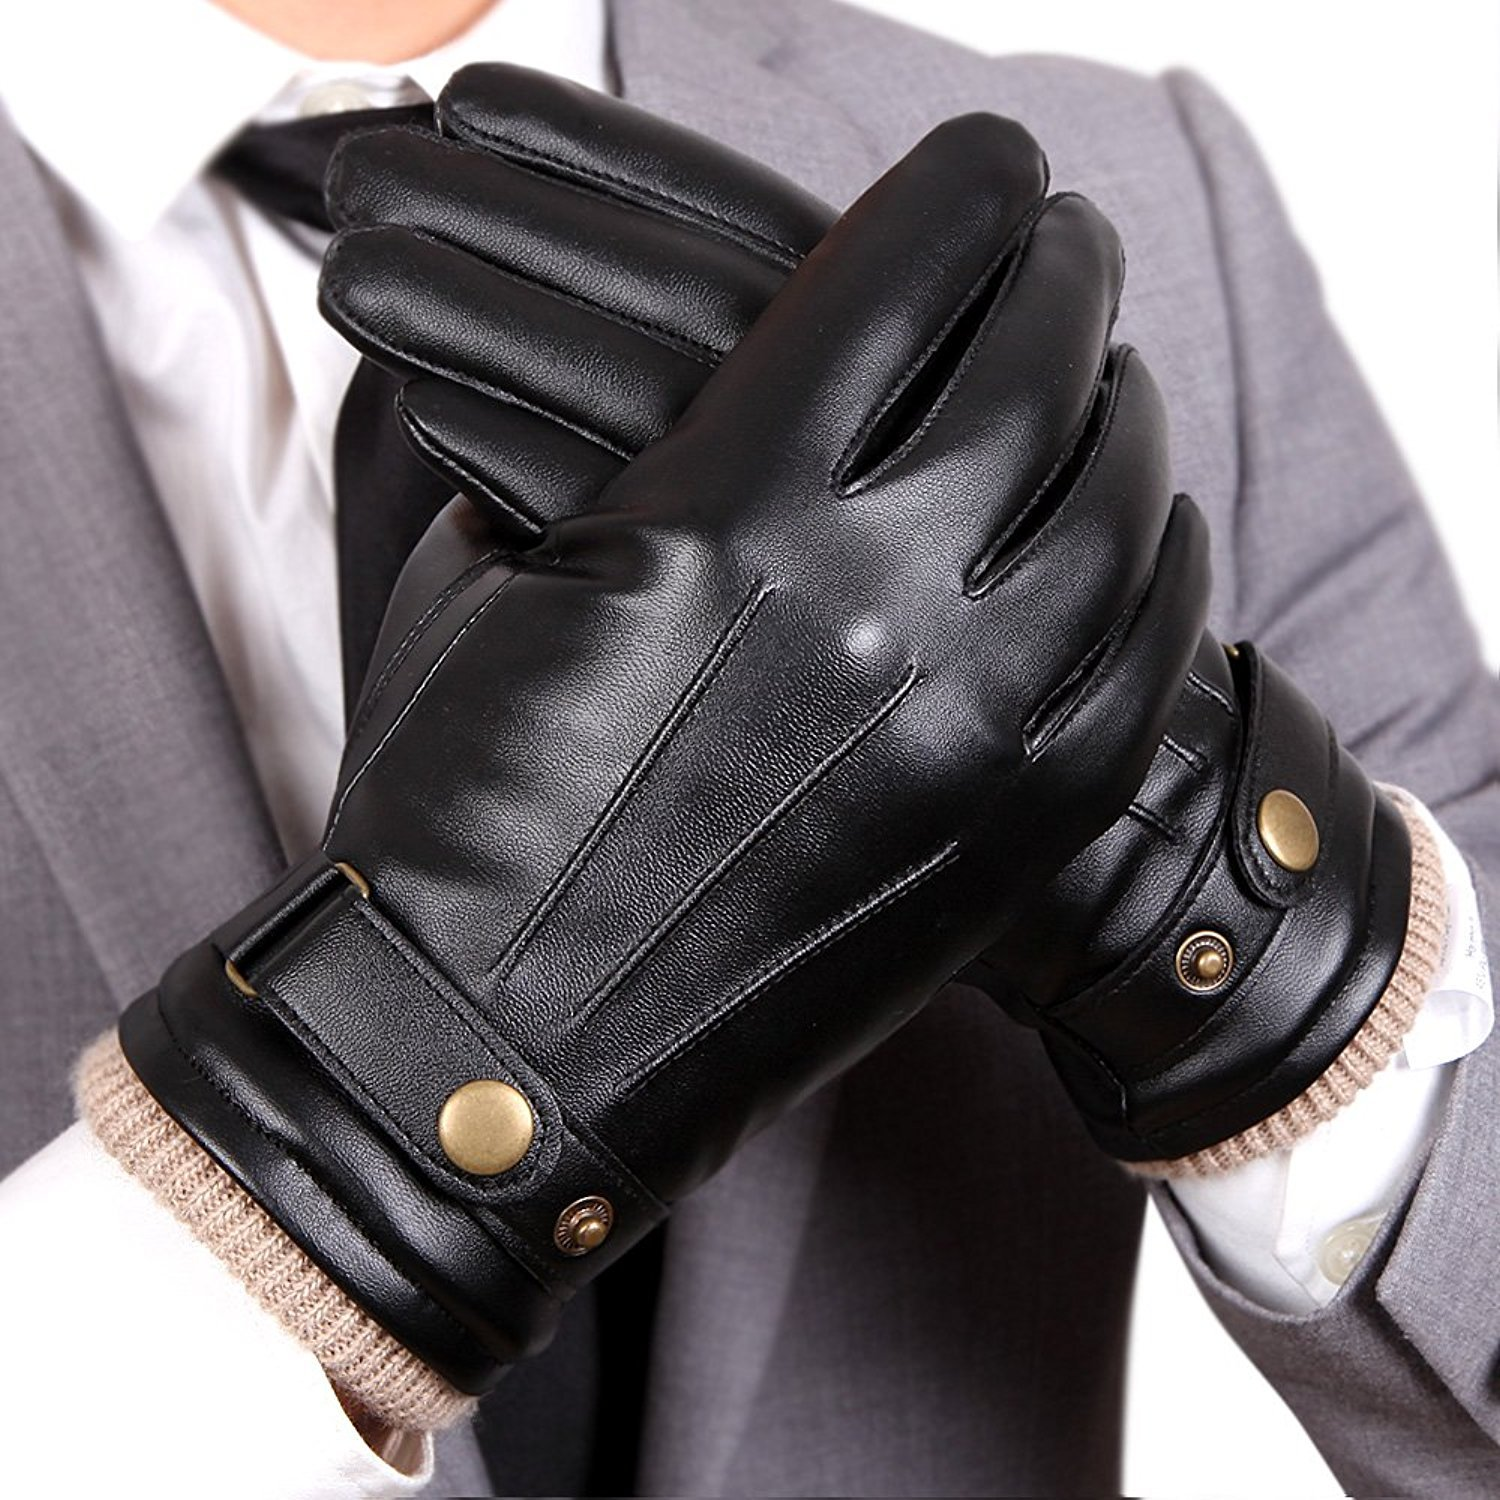 Brown vs black leather gloves - Warmen Mens Touchscreen Texting Winter Pu Faux Leather Gloves Driving Long Fleece Lining Black Wool